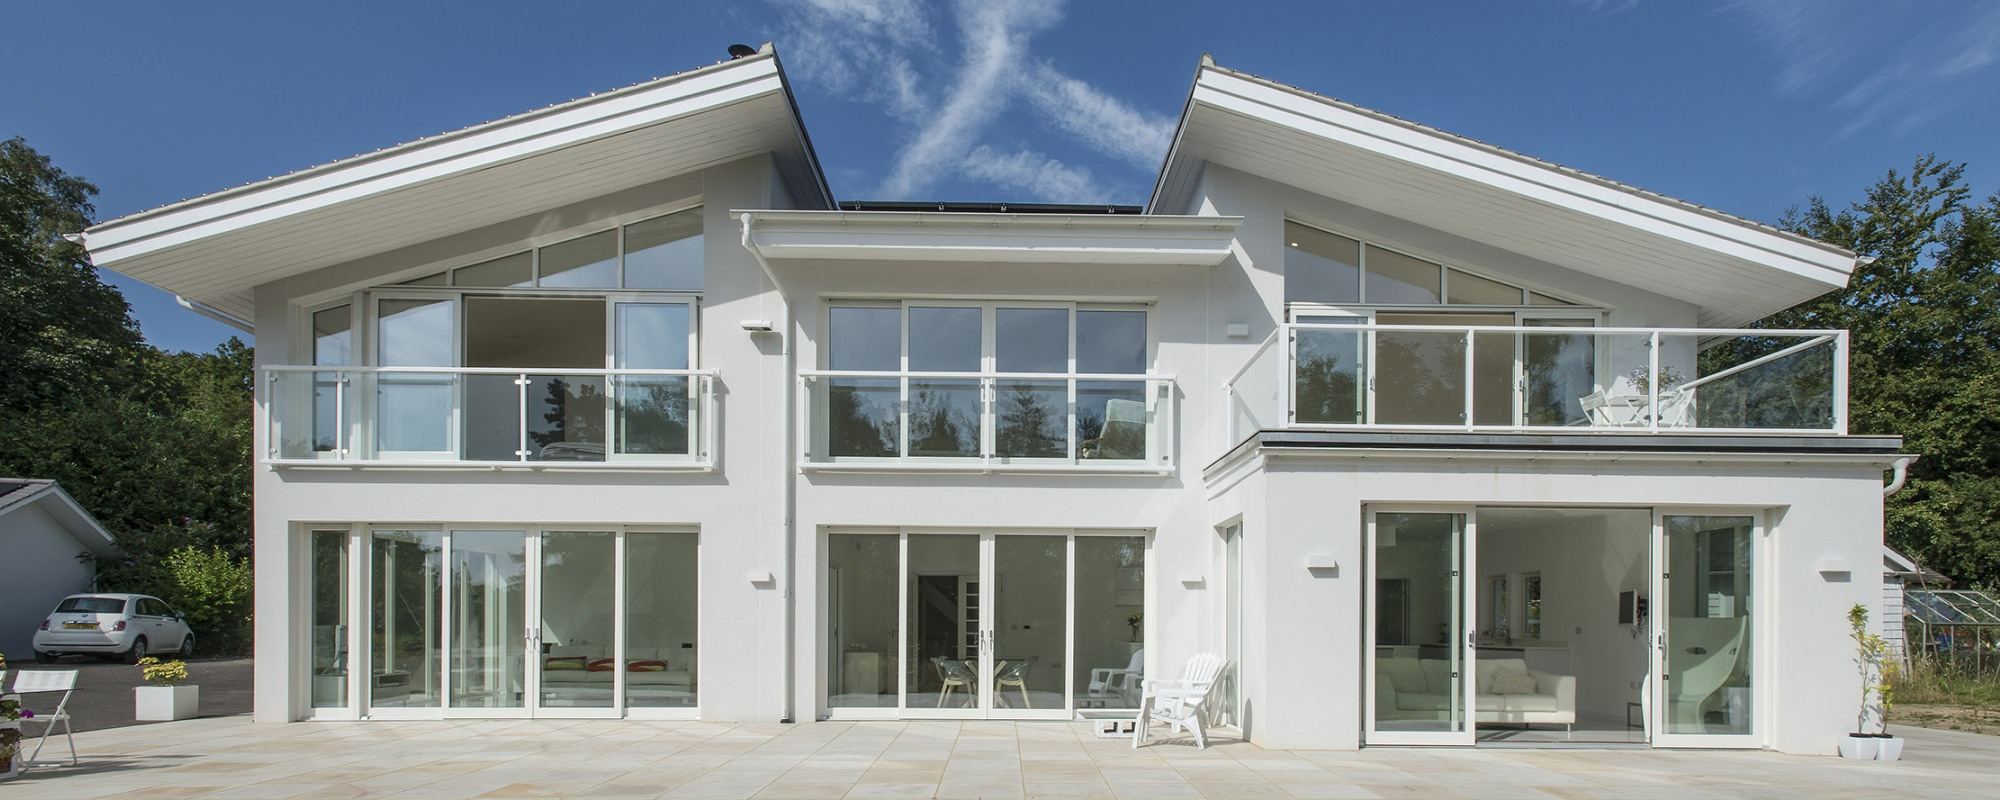 Contemporary Self Build Home